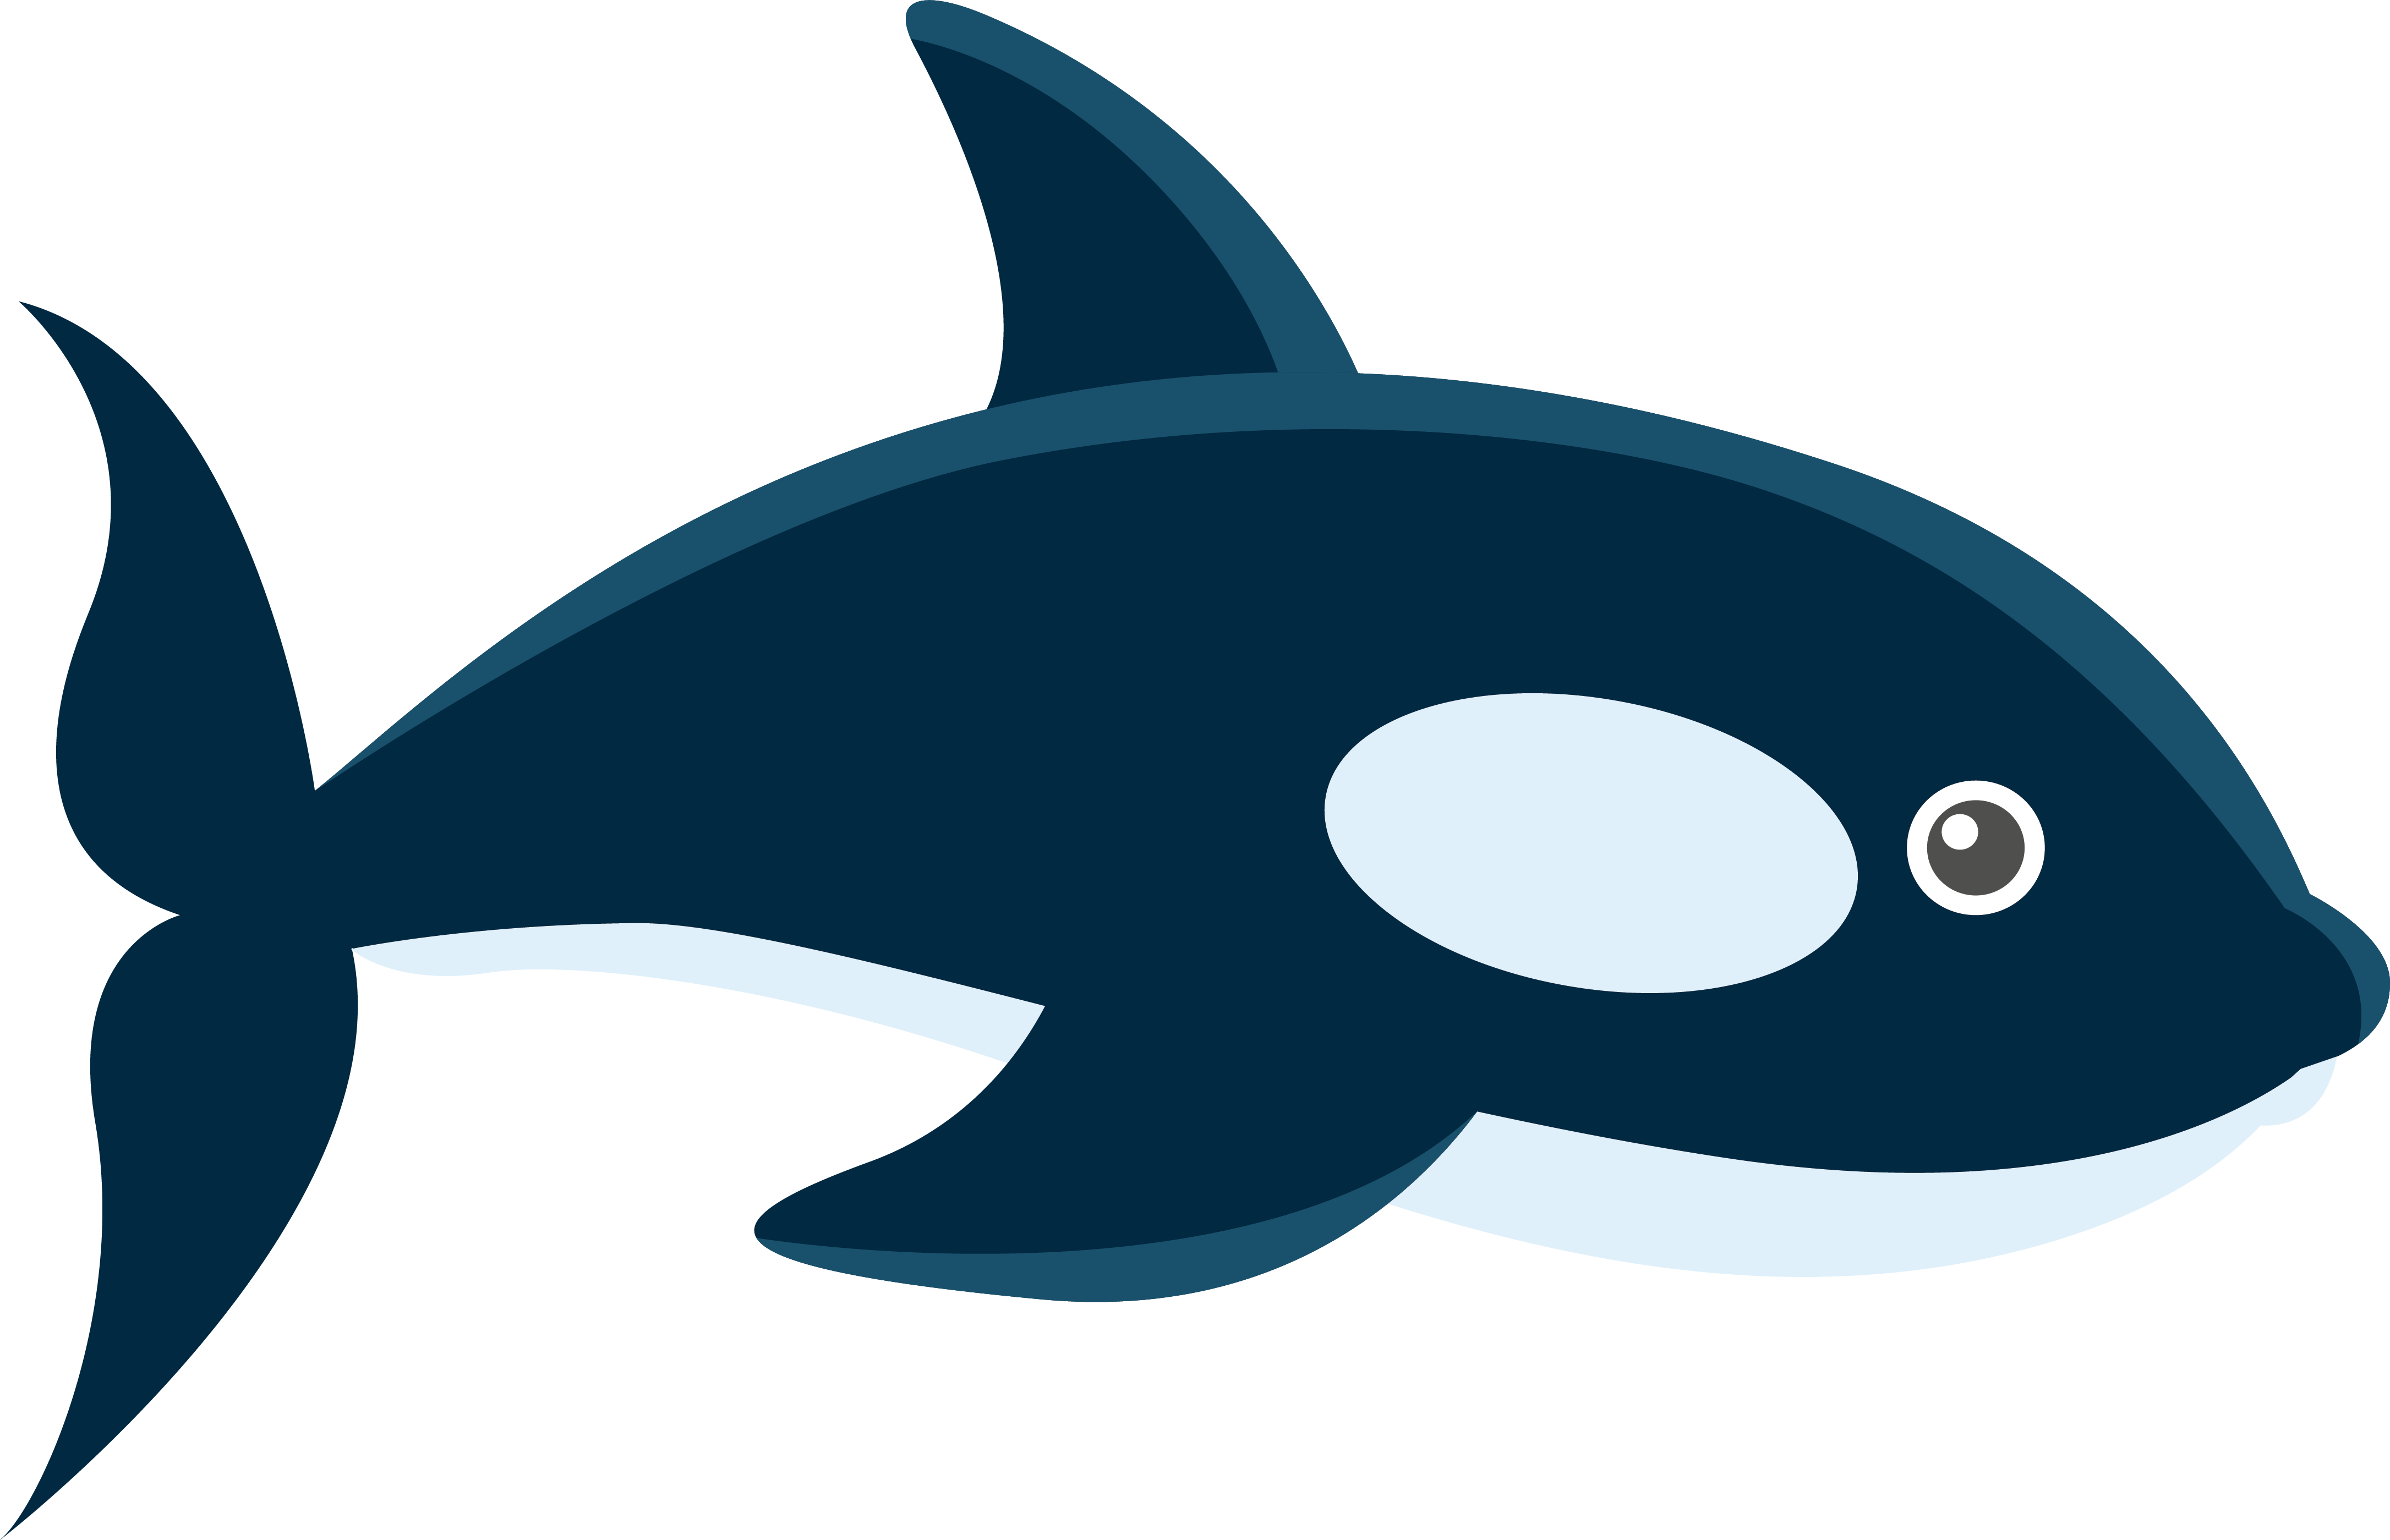 Dolphin clipart illustrator. Whale marine biology adobe